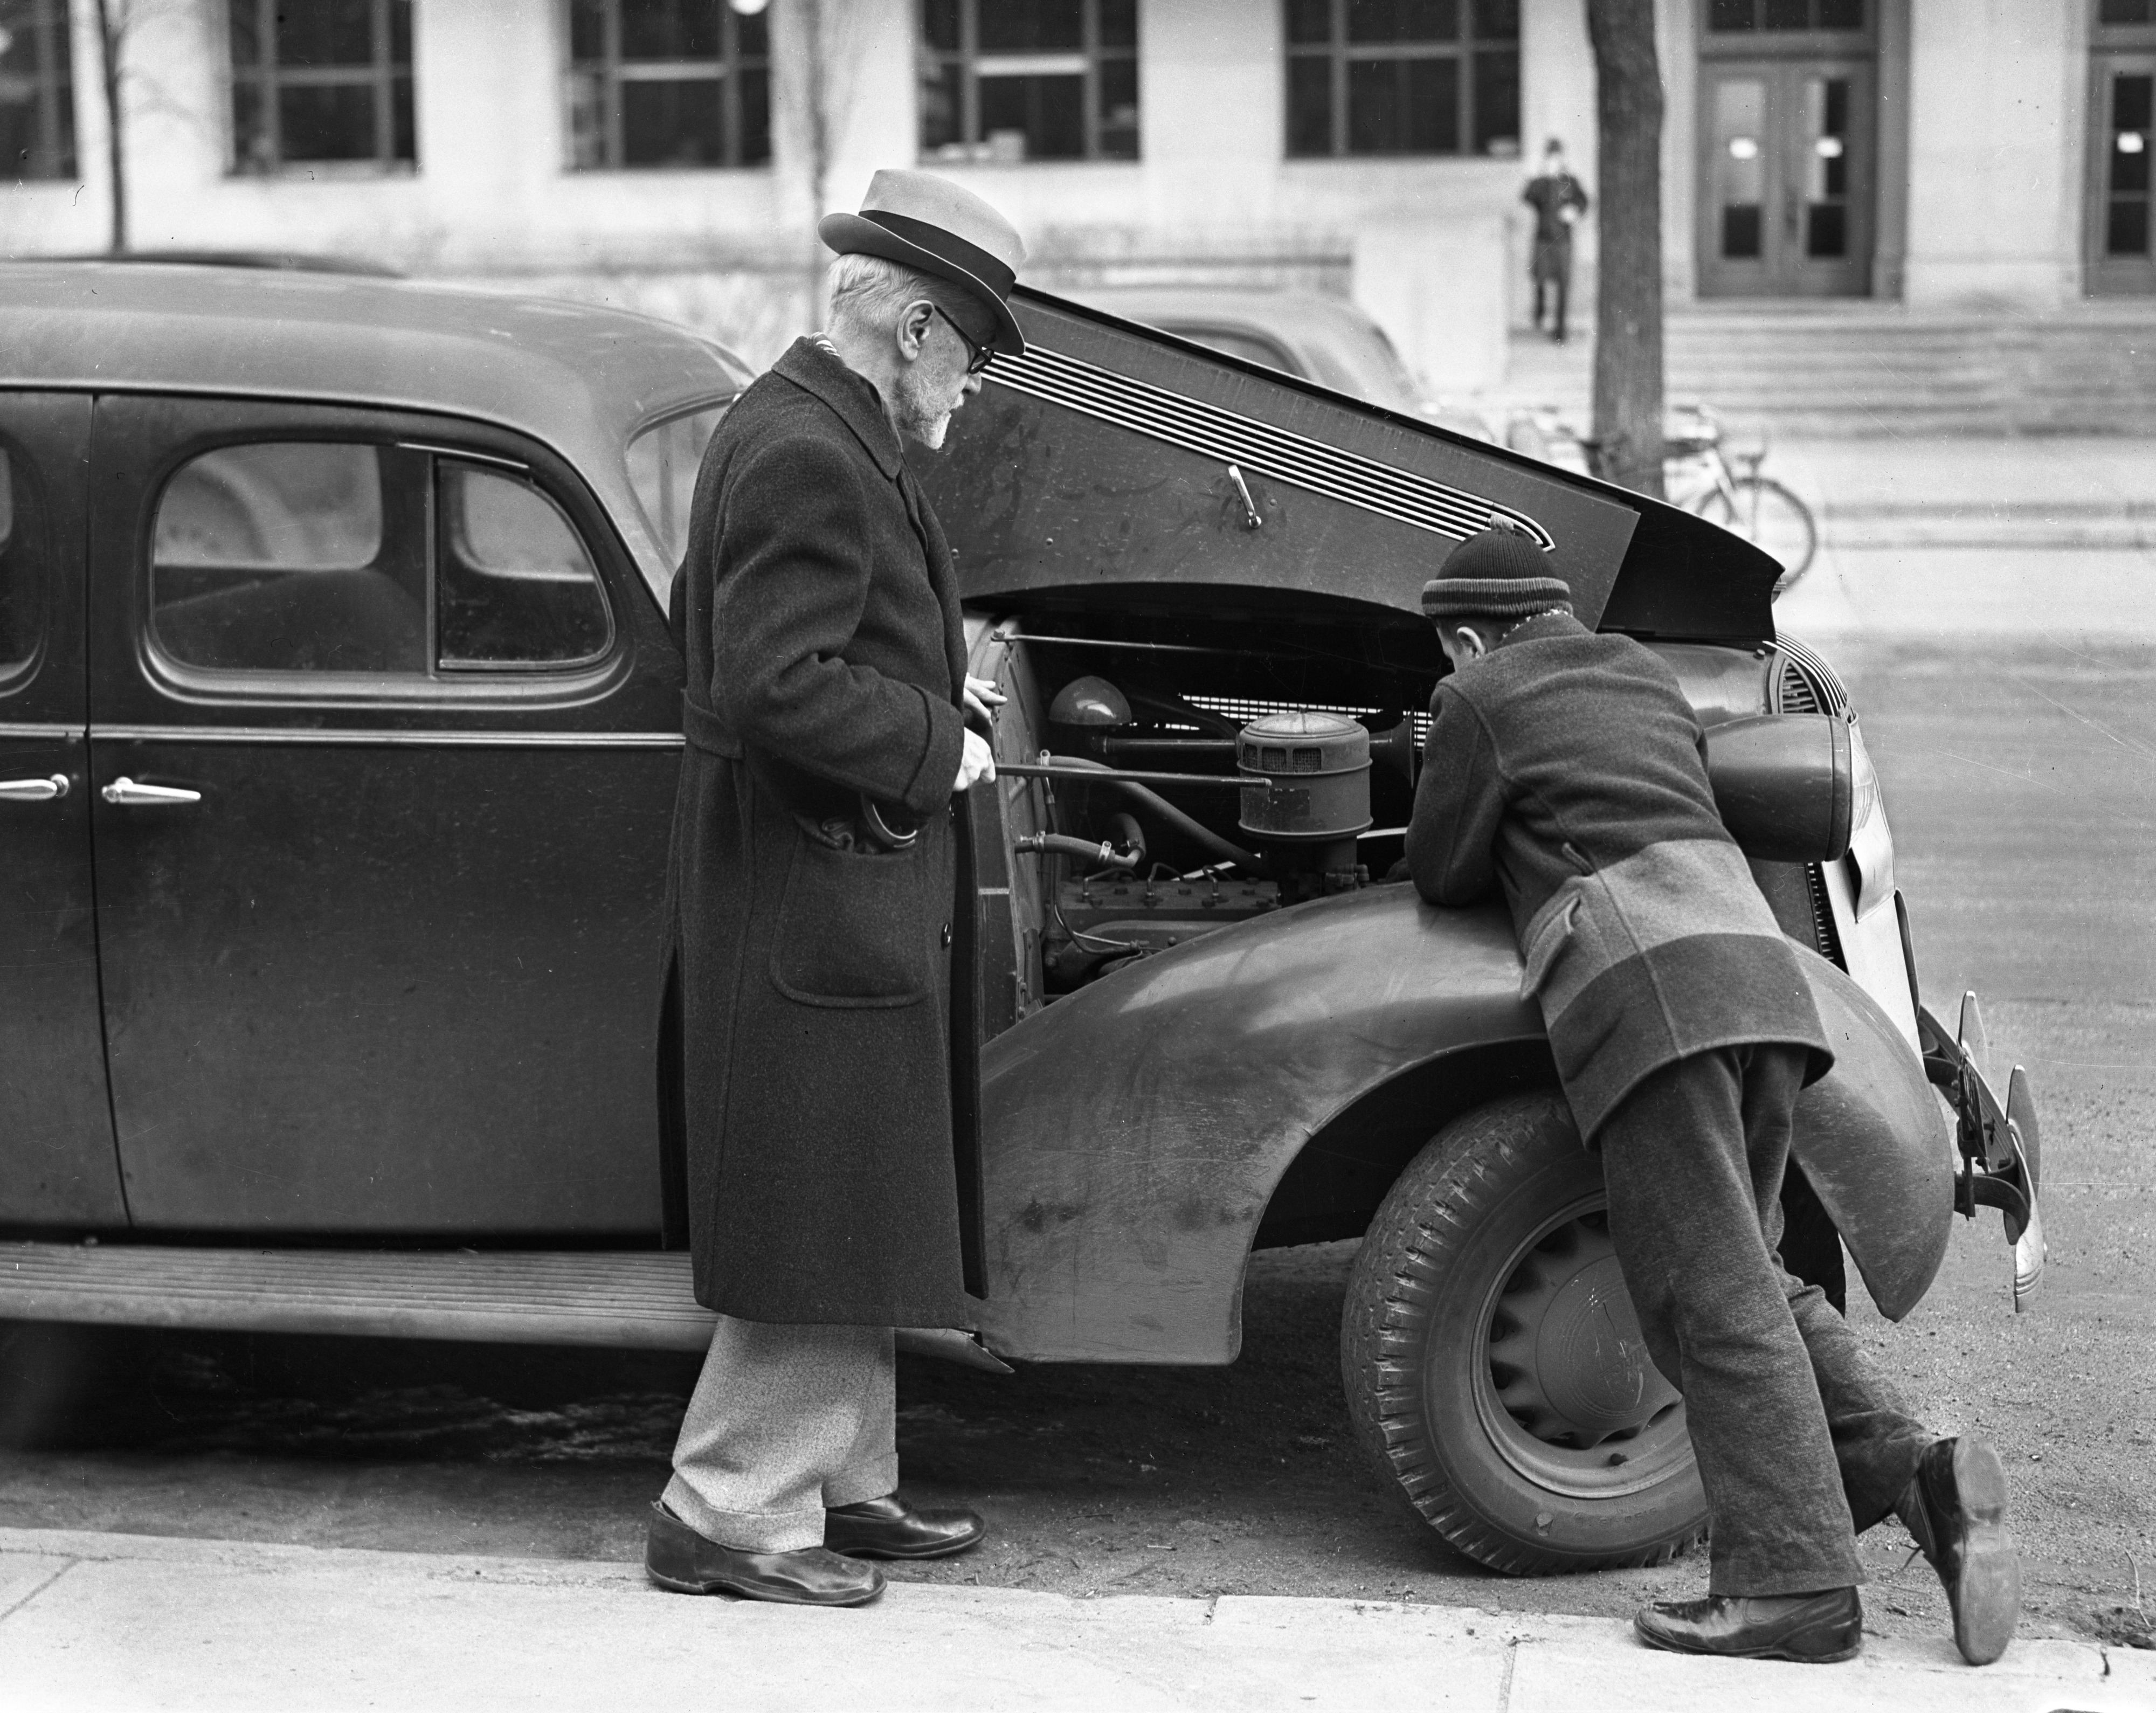 Bobby and the Old Professor: Car Engine, January 1938 image